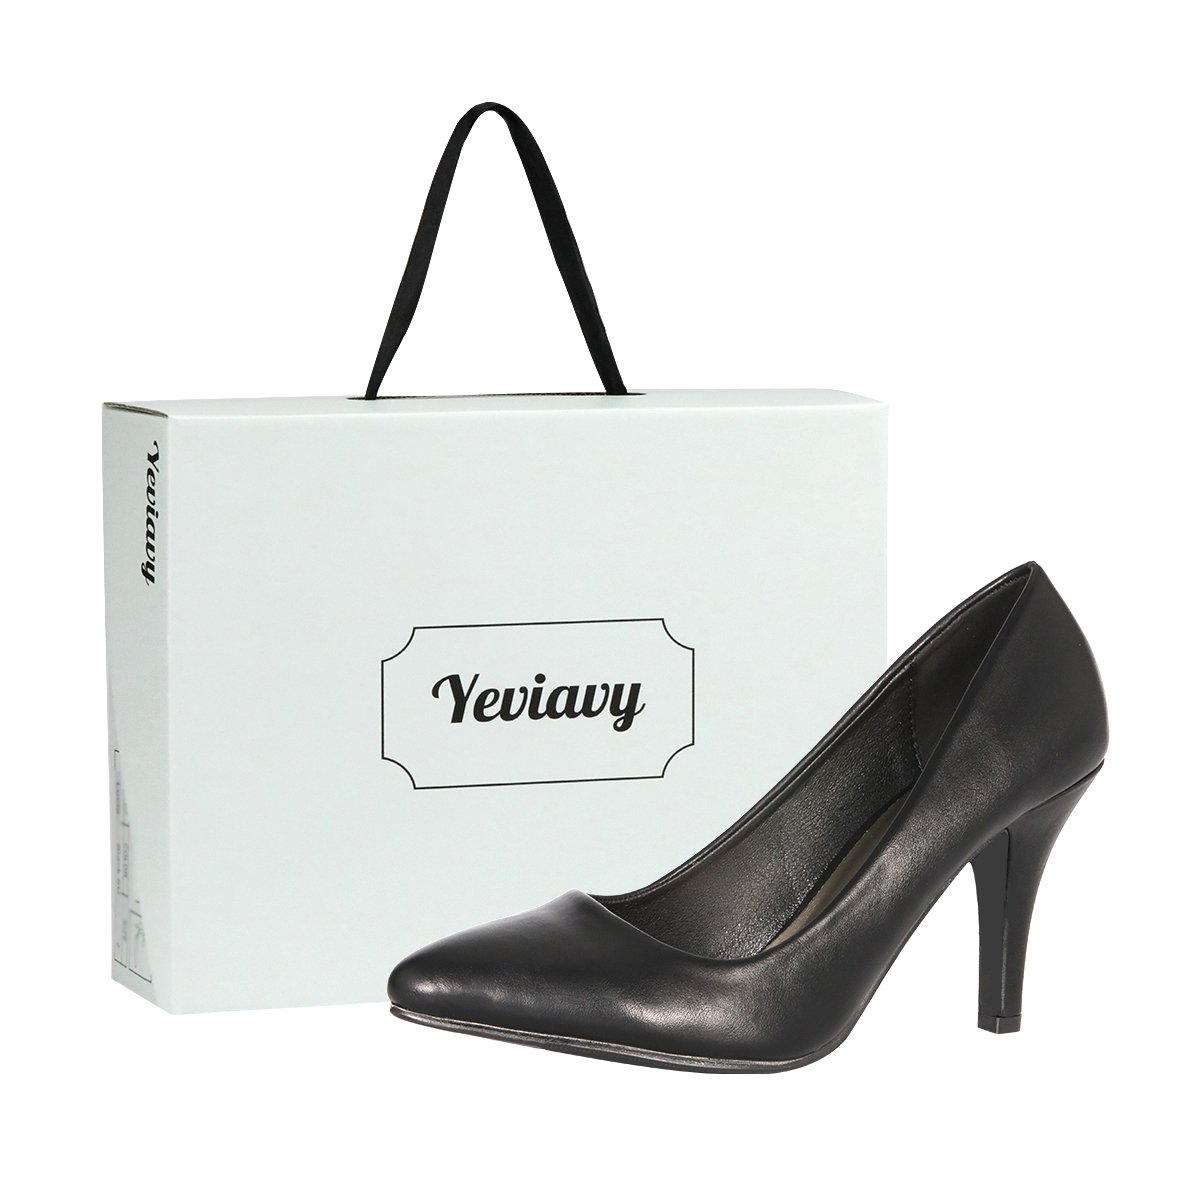 Yeviavy Women's Pumps Shoes High Heel Pointed Toe Dress Fashion Shoes Black/Pewter PU 8.5 by Yeviavy (Image #6)